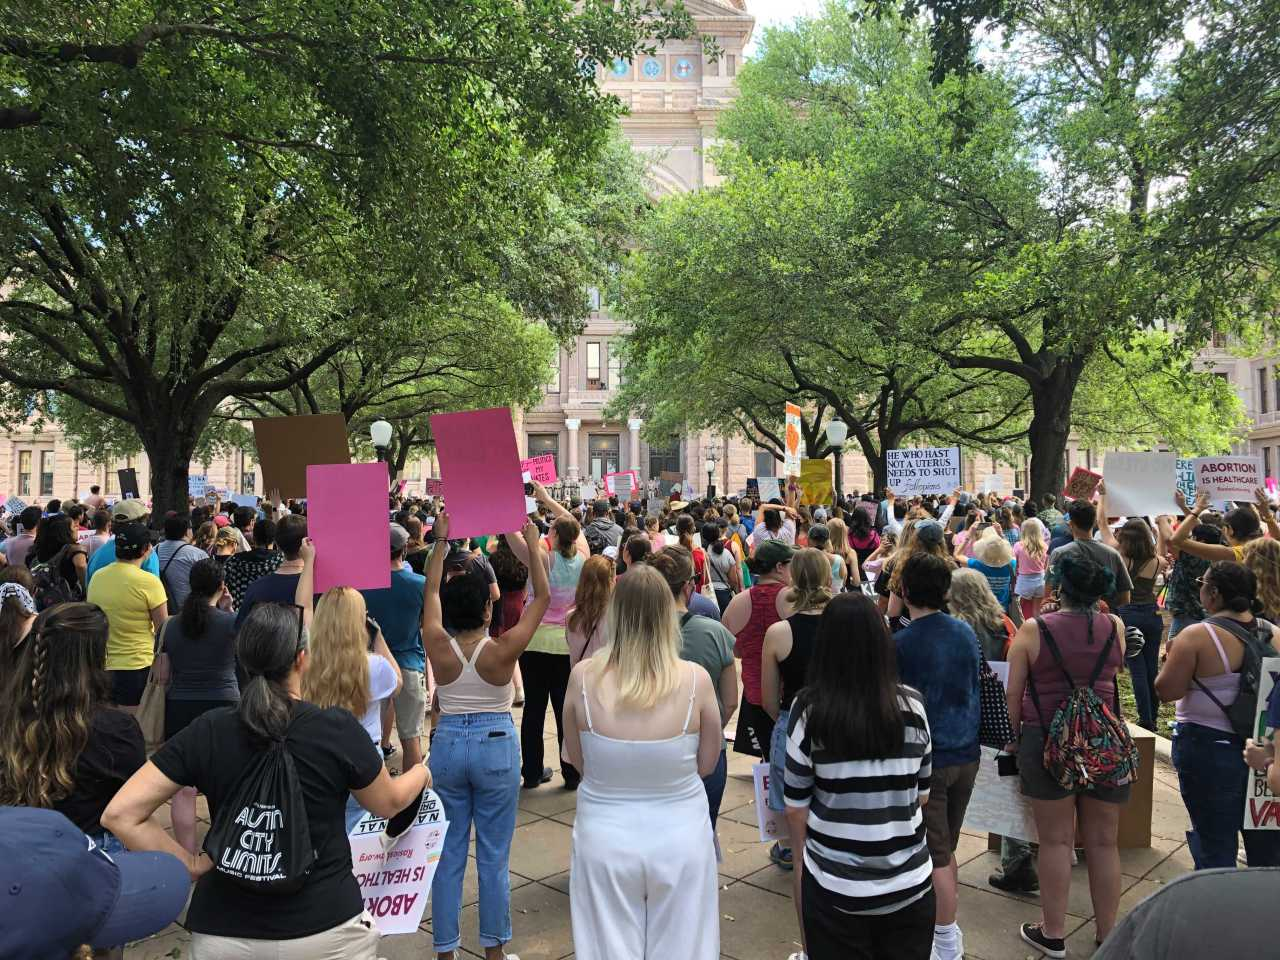 Pro-choice protesters rally in Austin against Texas' anti-abortion heartbeat bill